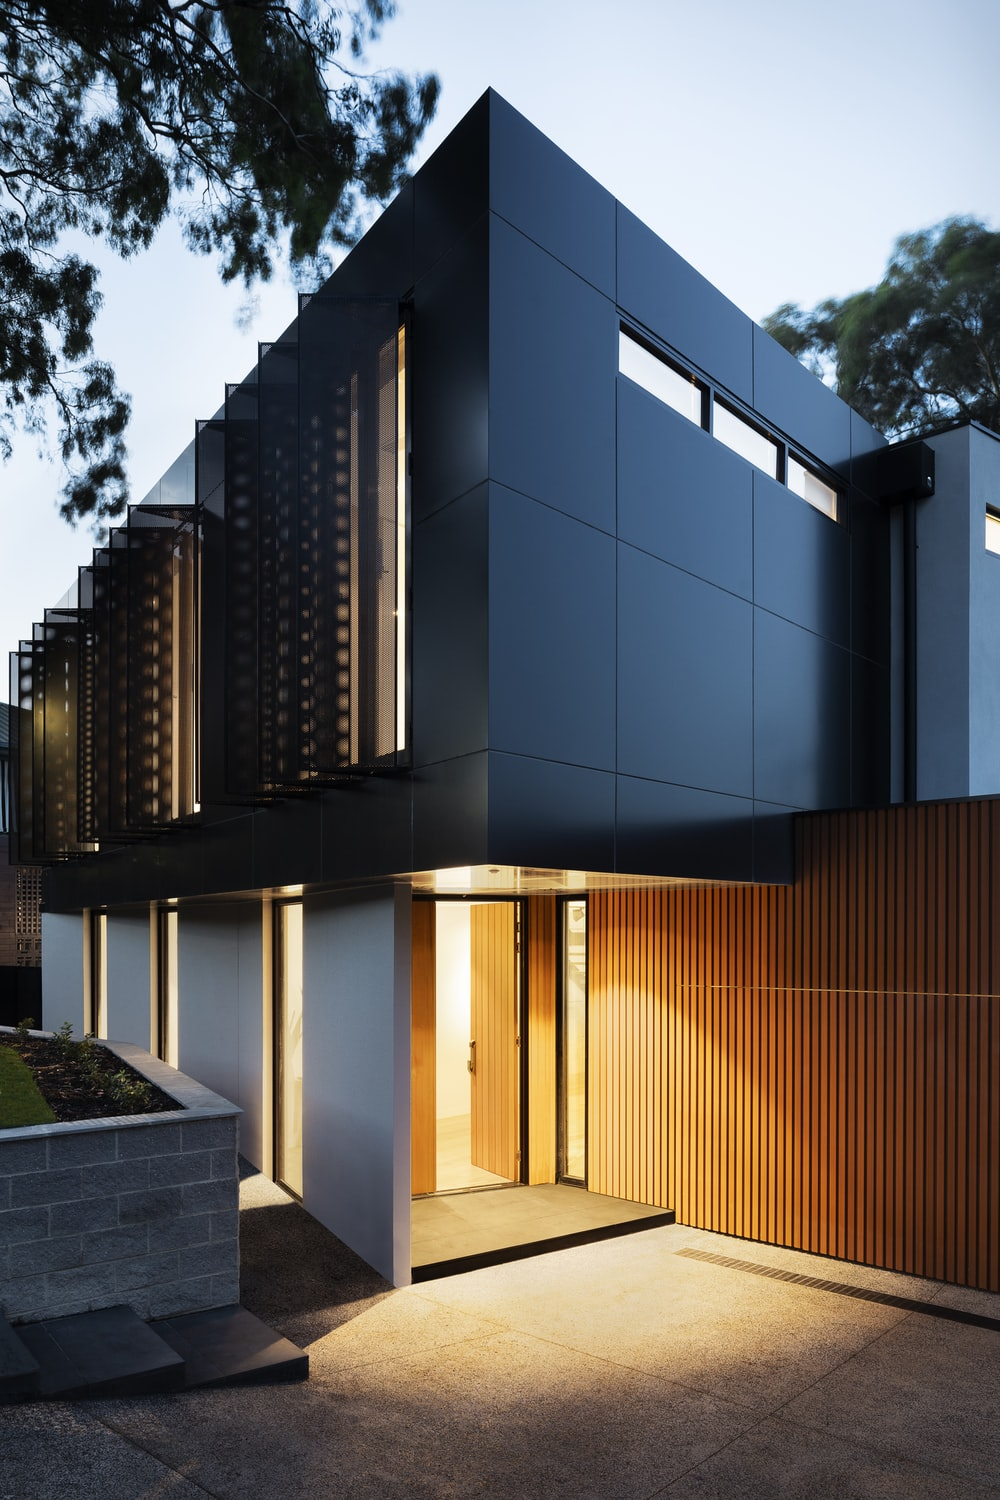 brown and black concrete building